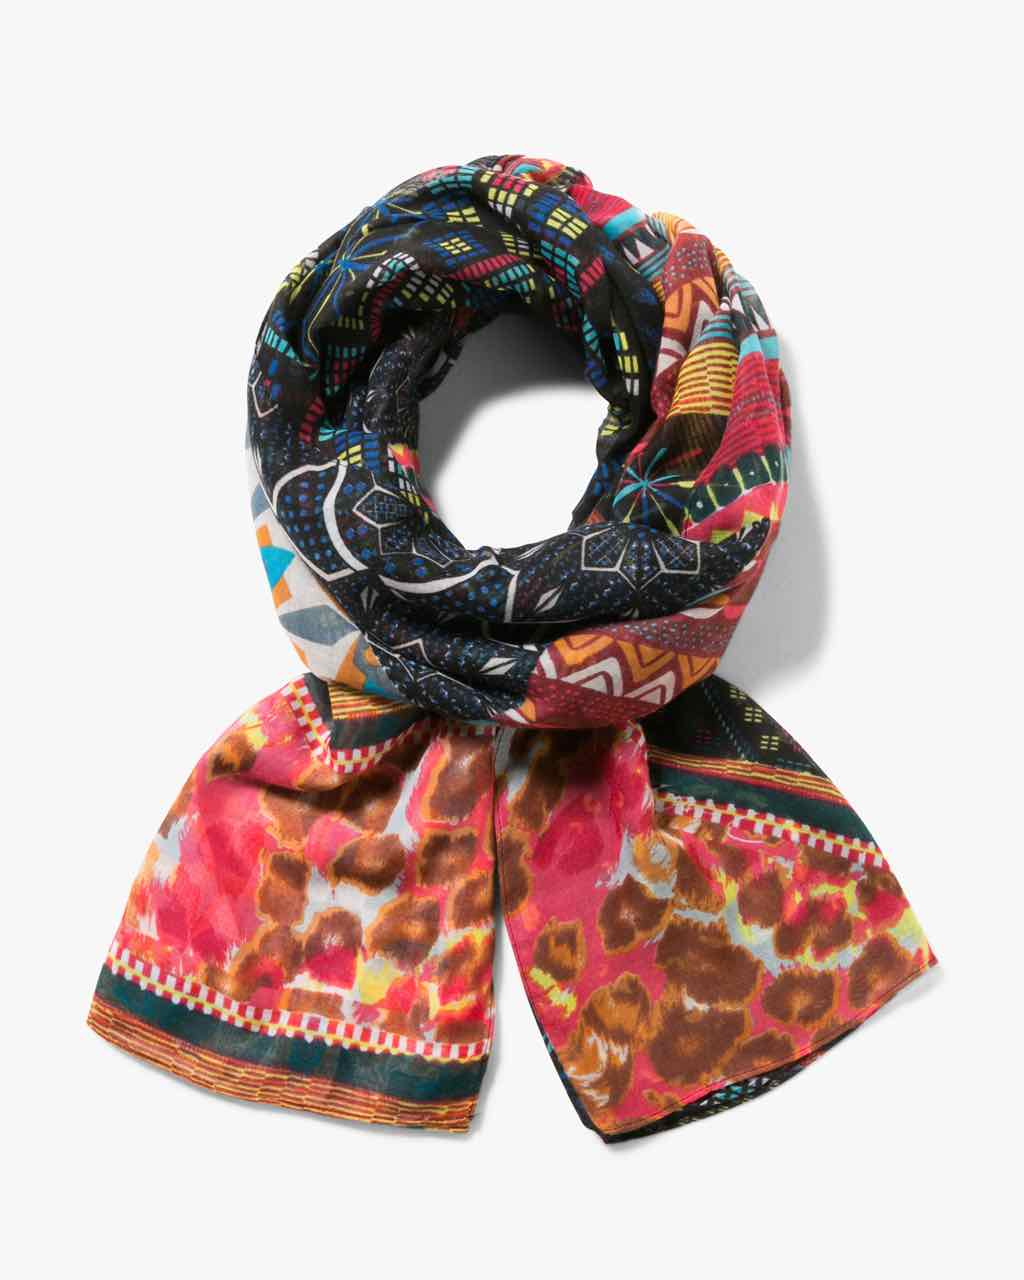 17WAWFG0_7008 Desigual Scarf Rectangle Misha Buy Online